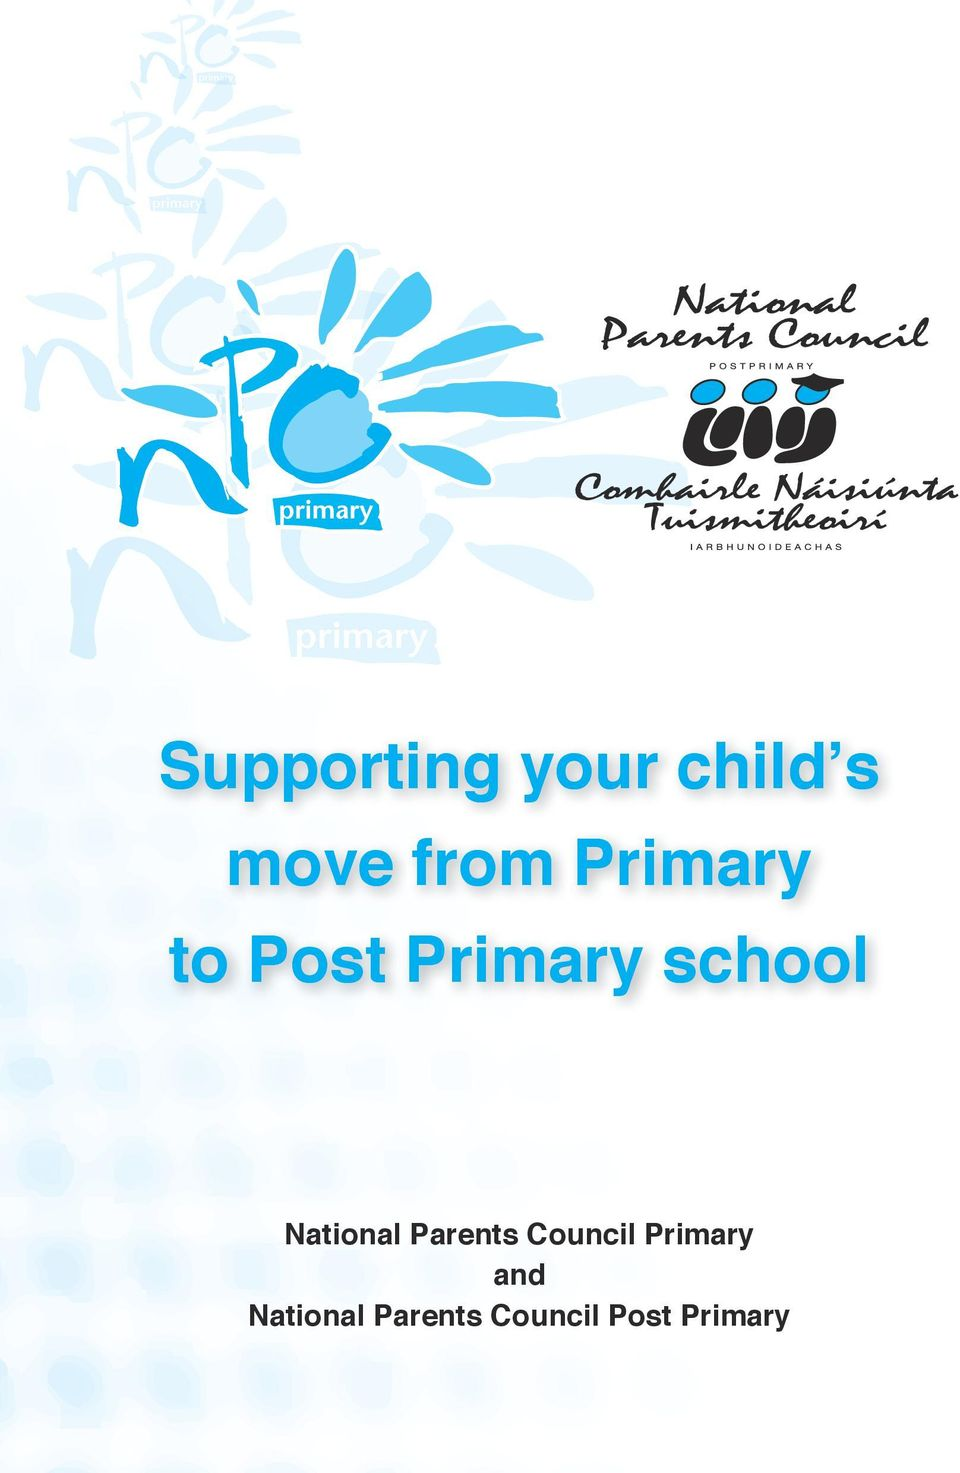 National Parents Council Primary